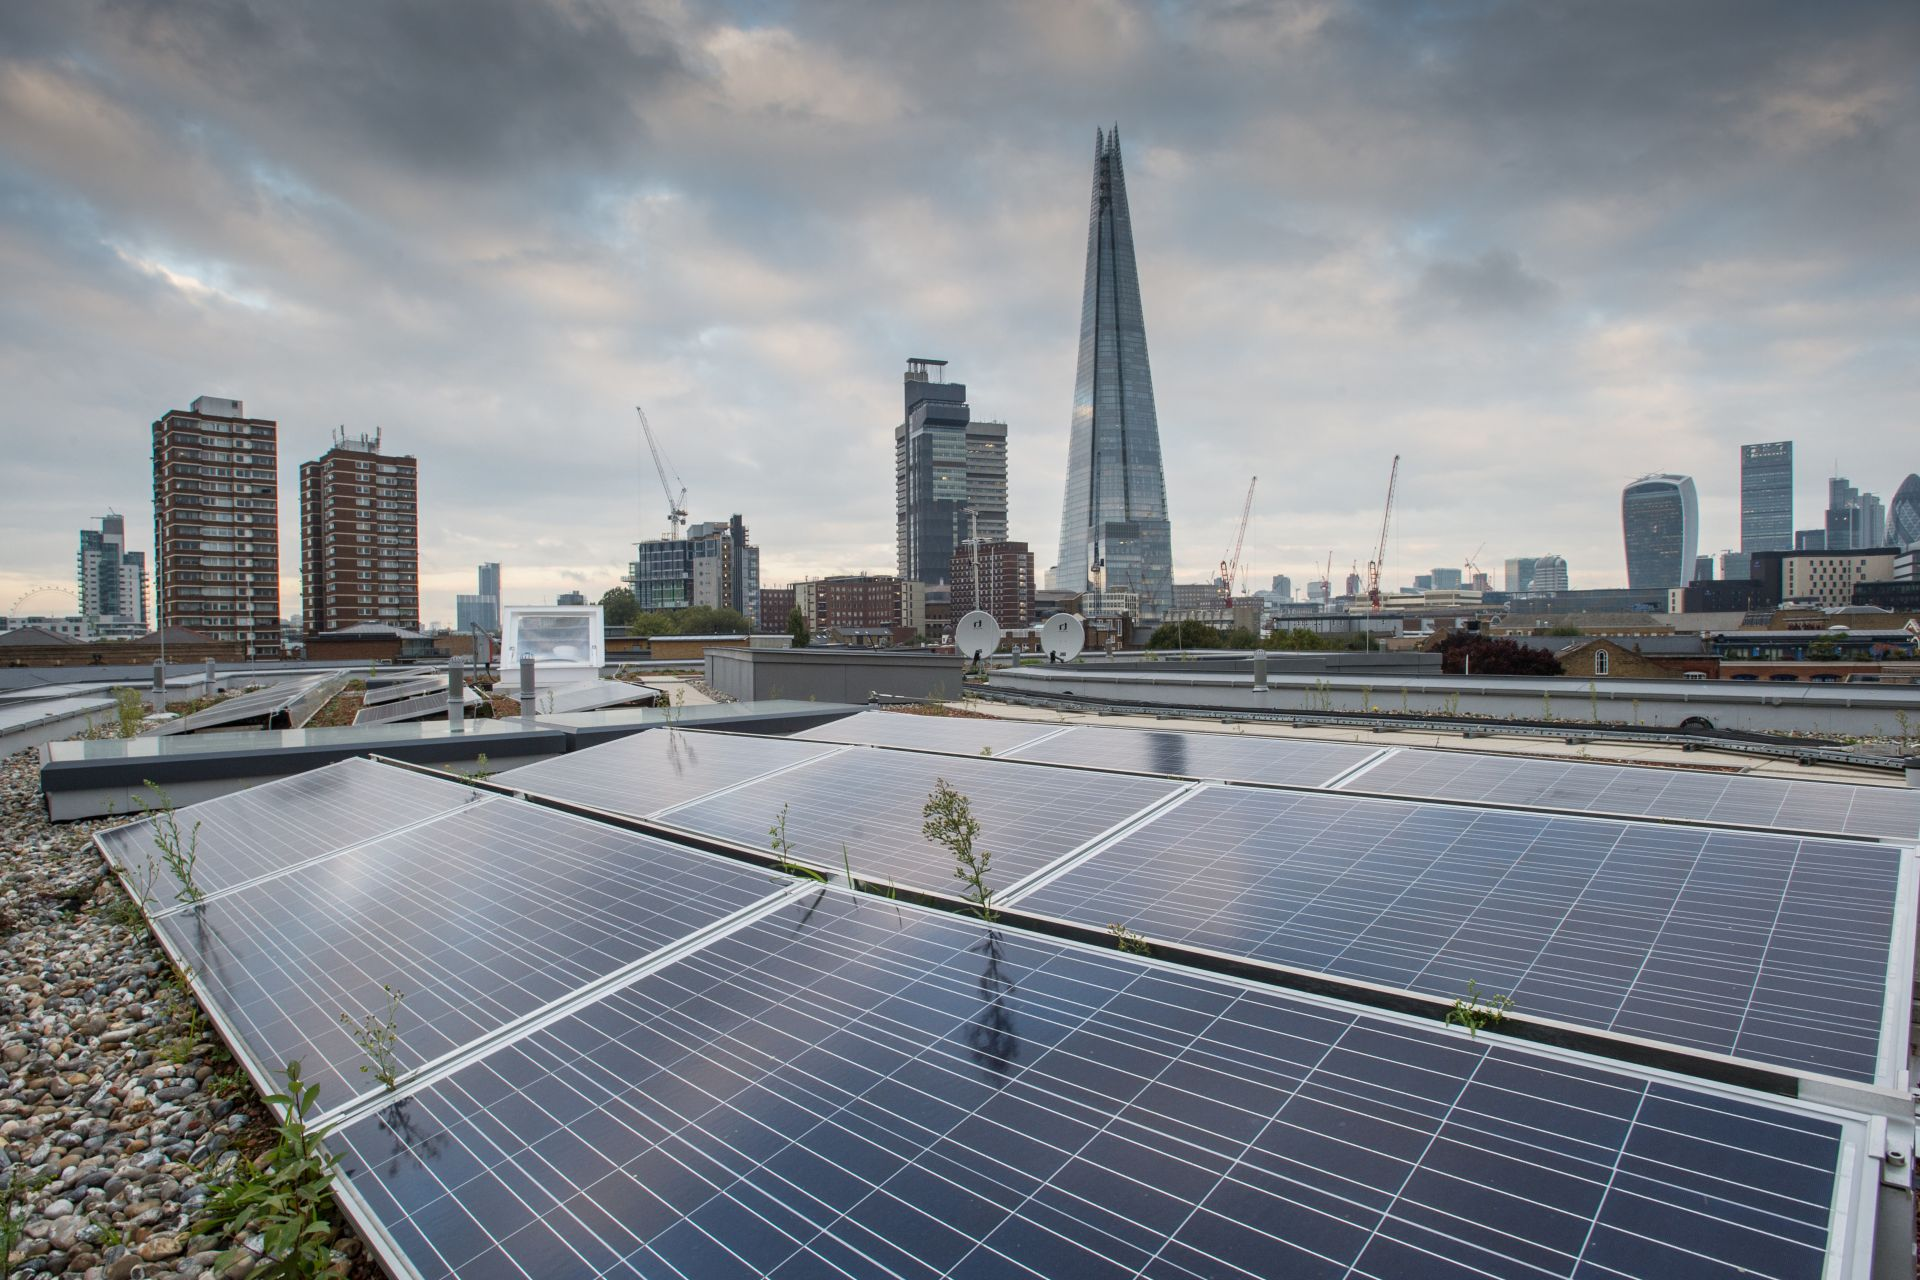 Solar roof with single-ply membrane installed on Bermondsey Village buildings in London in UK